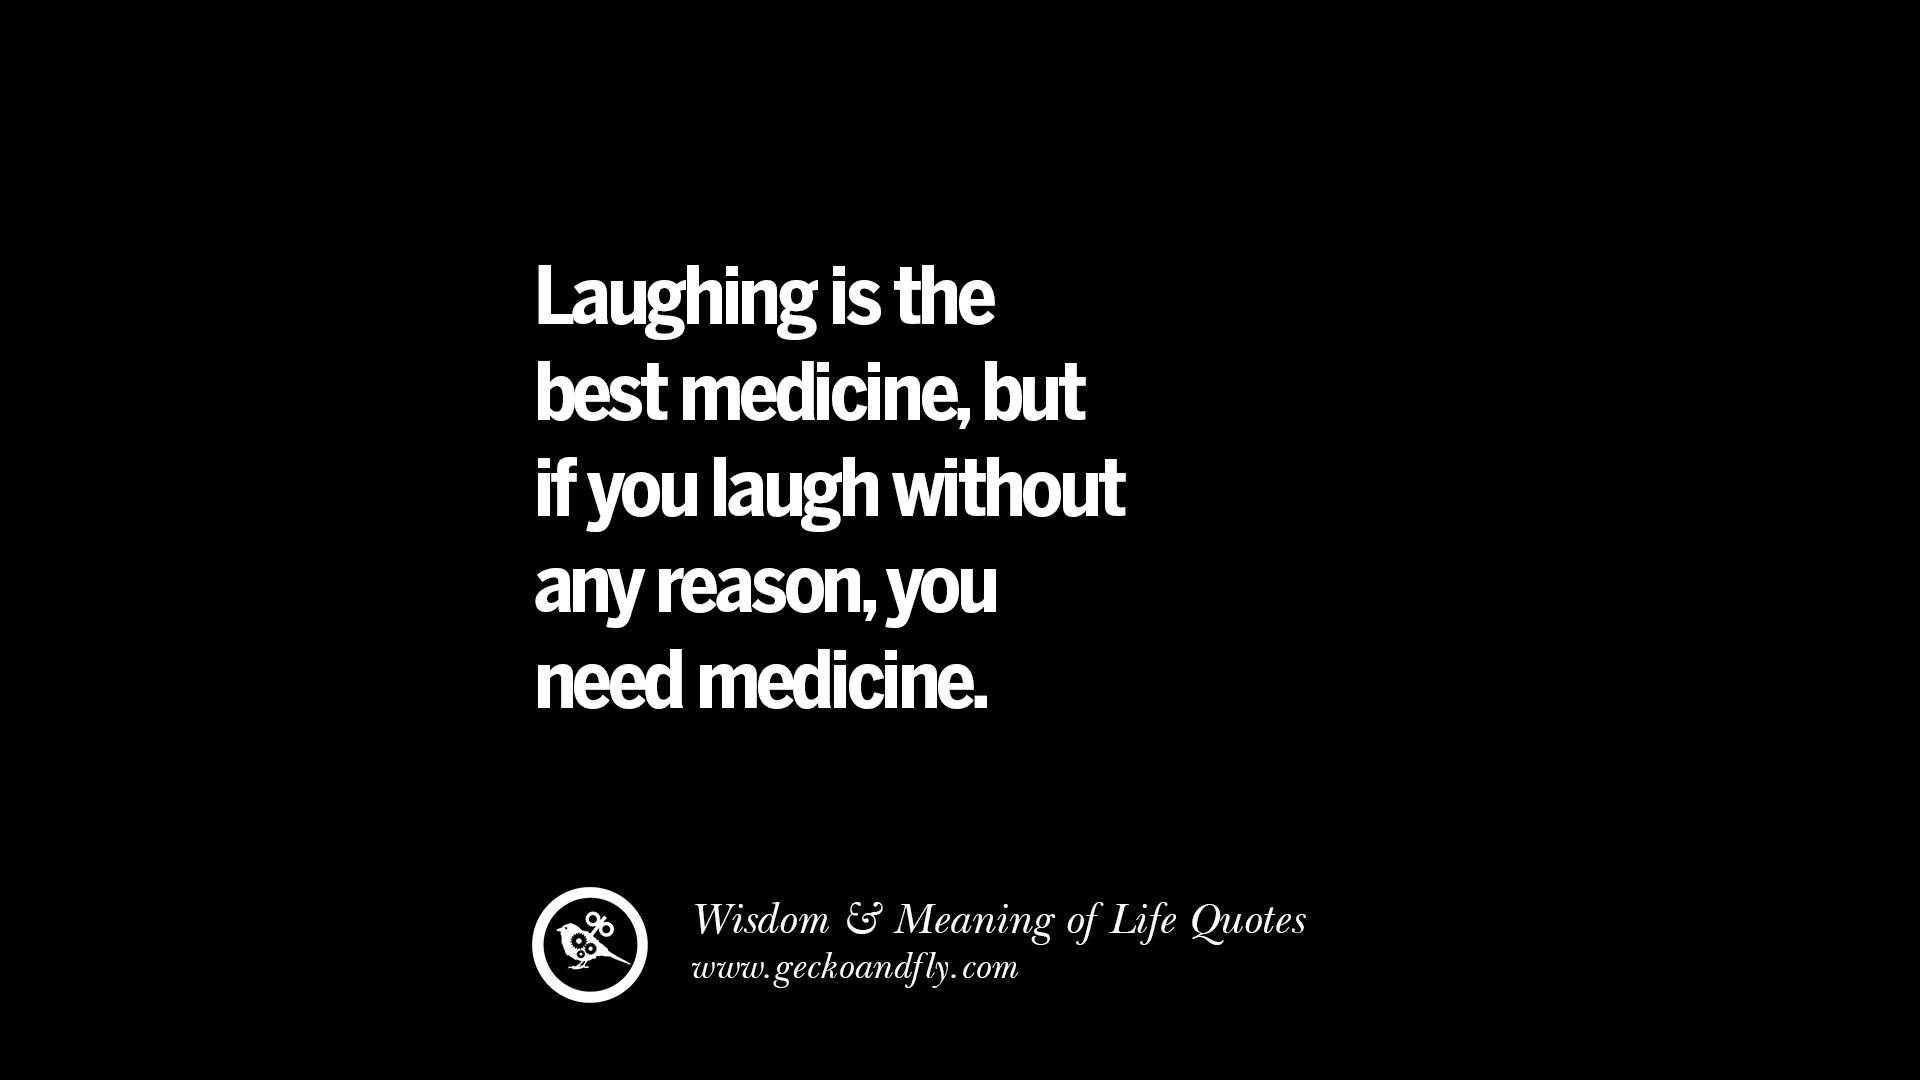 Wisdom About Life Quotes 24 Funny Eye Opening Quotes About Wisdom Truth And Meaning Of